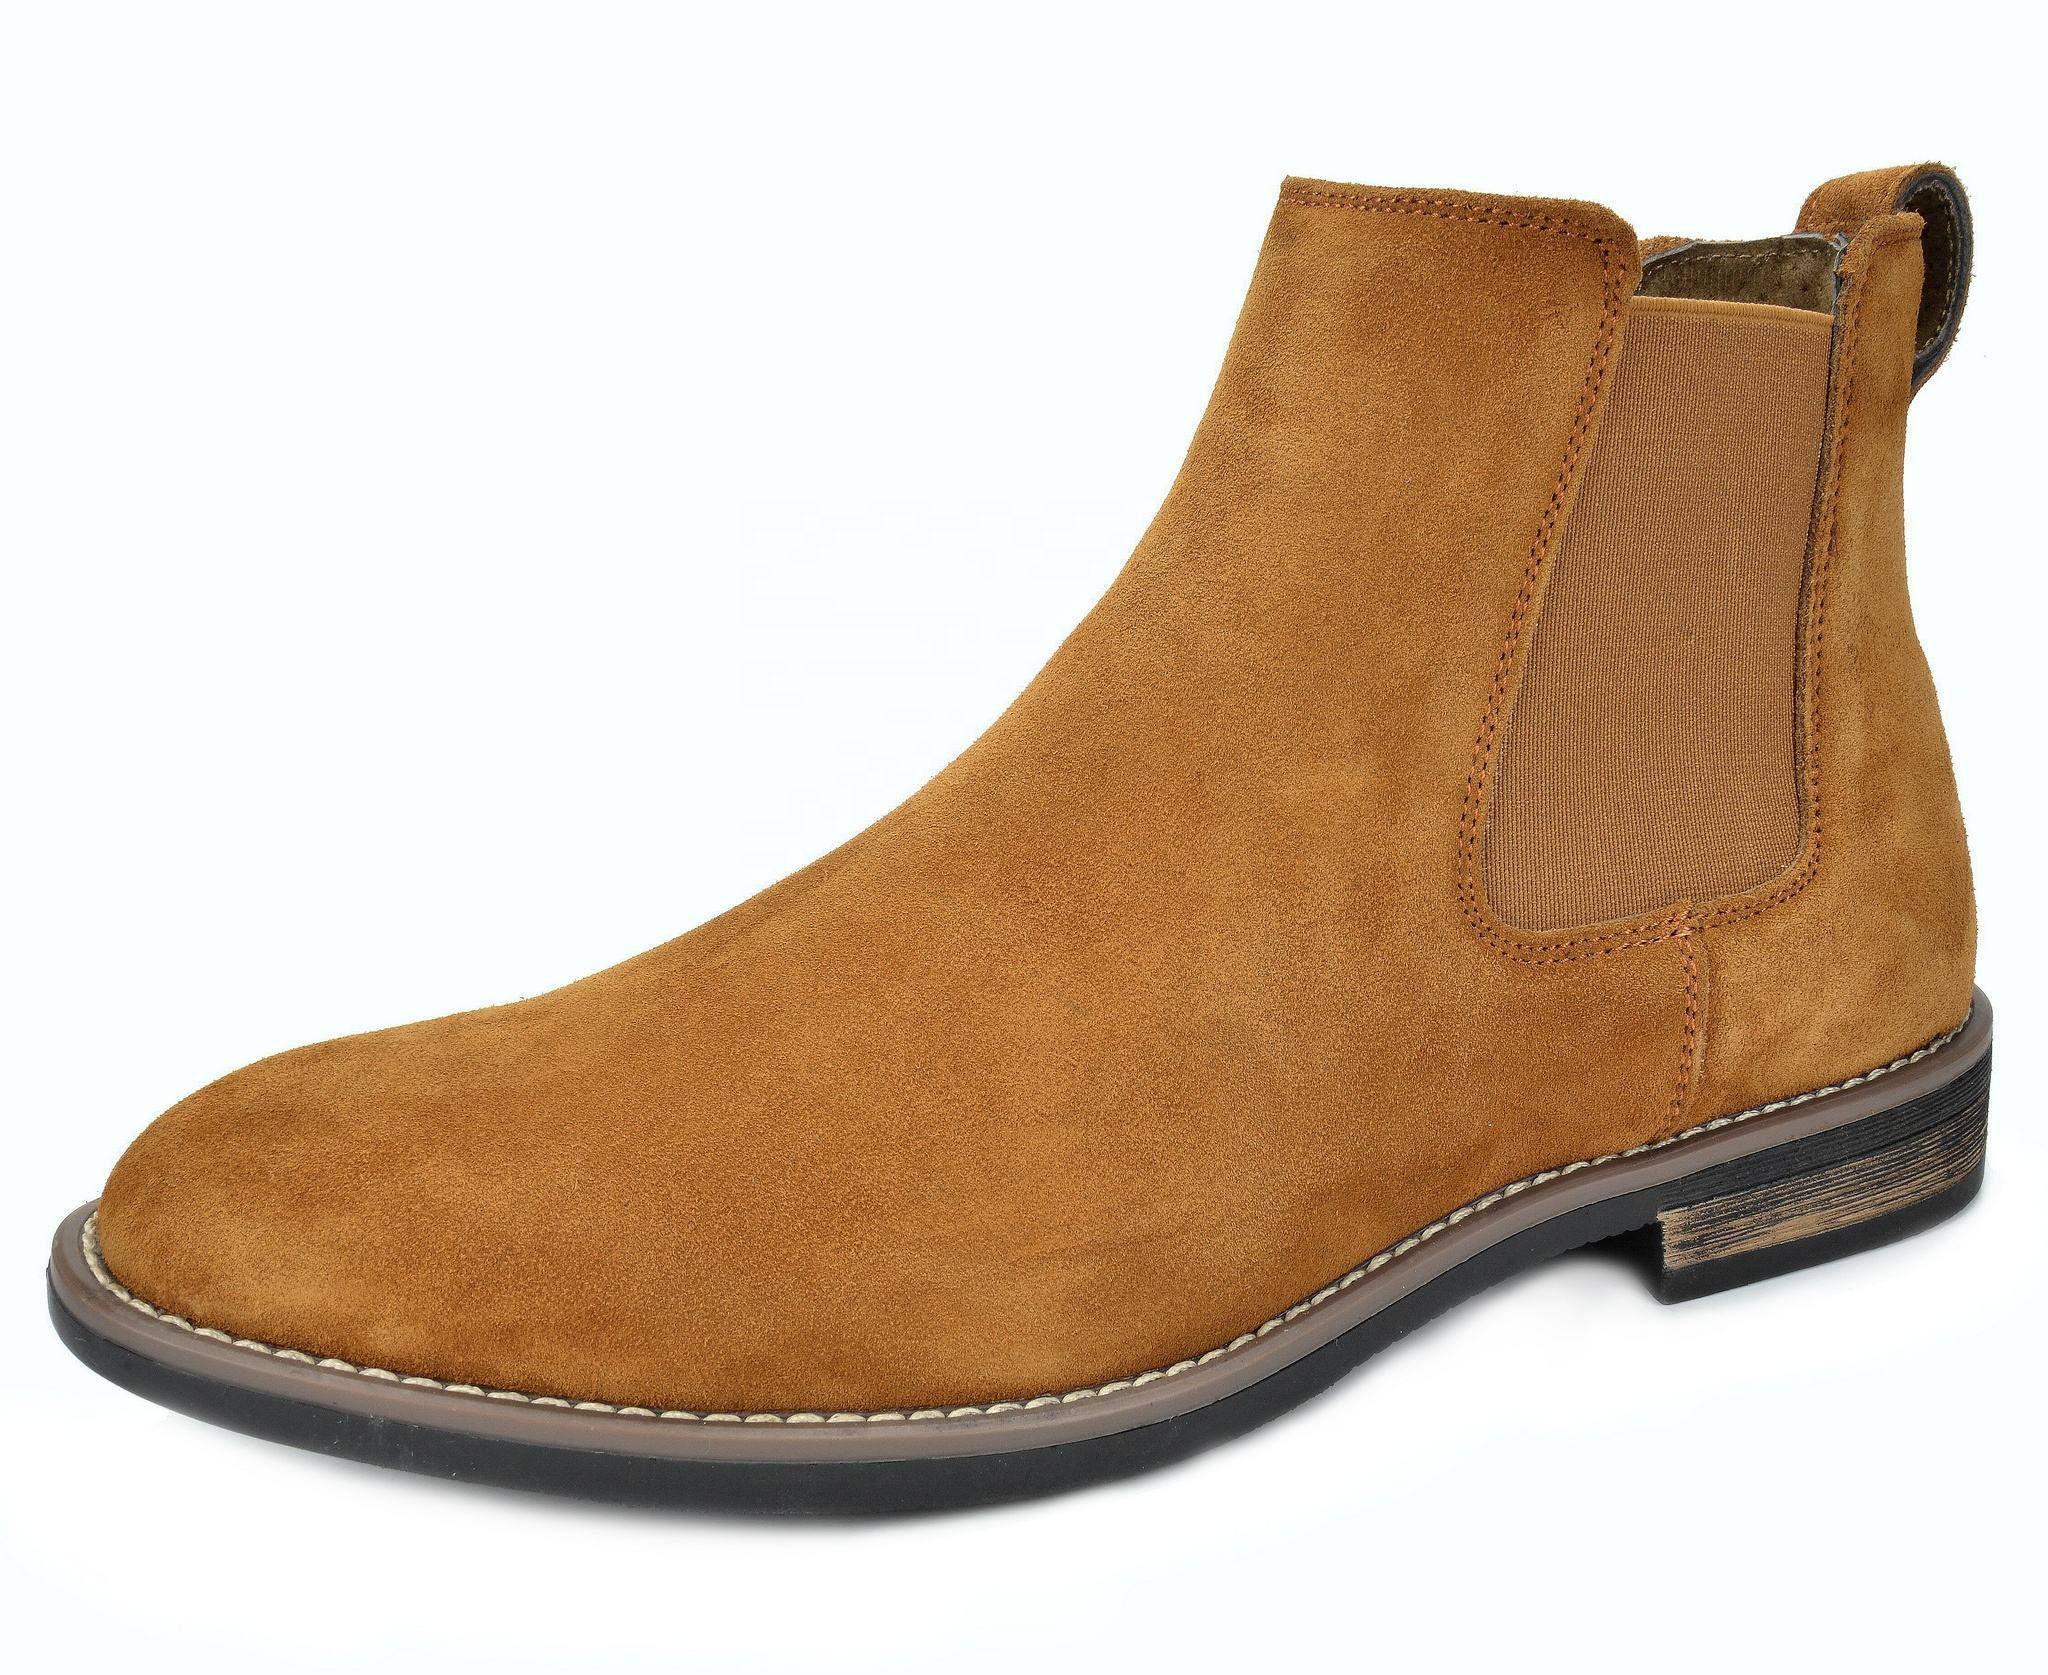 Men's Casual Dress Premium Suede Leather Ankle Chelsea Boots